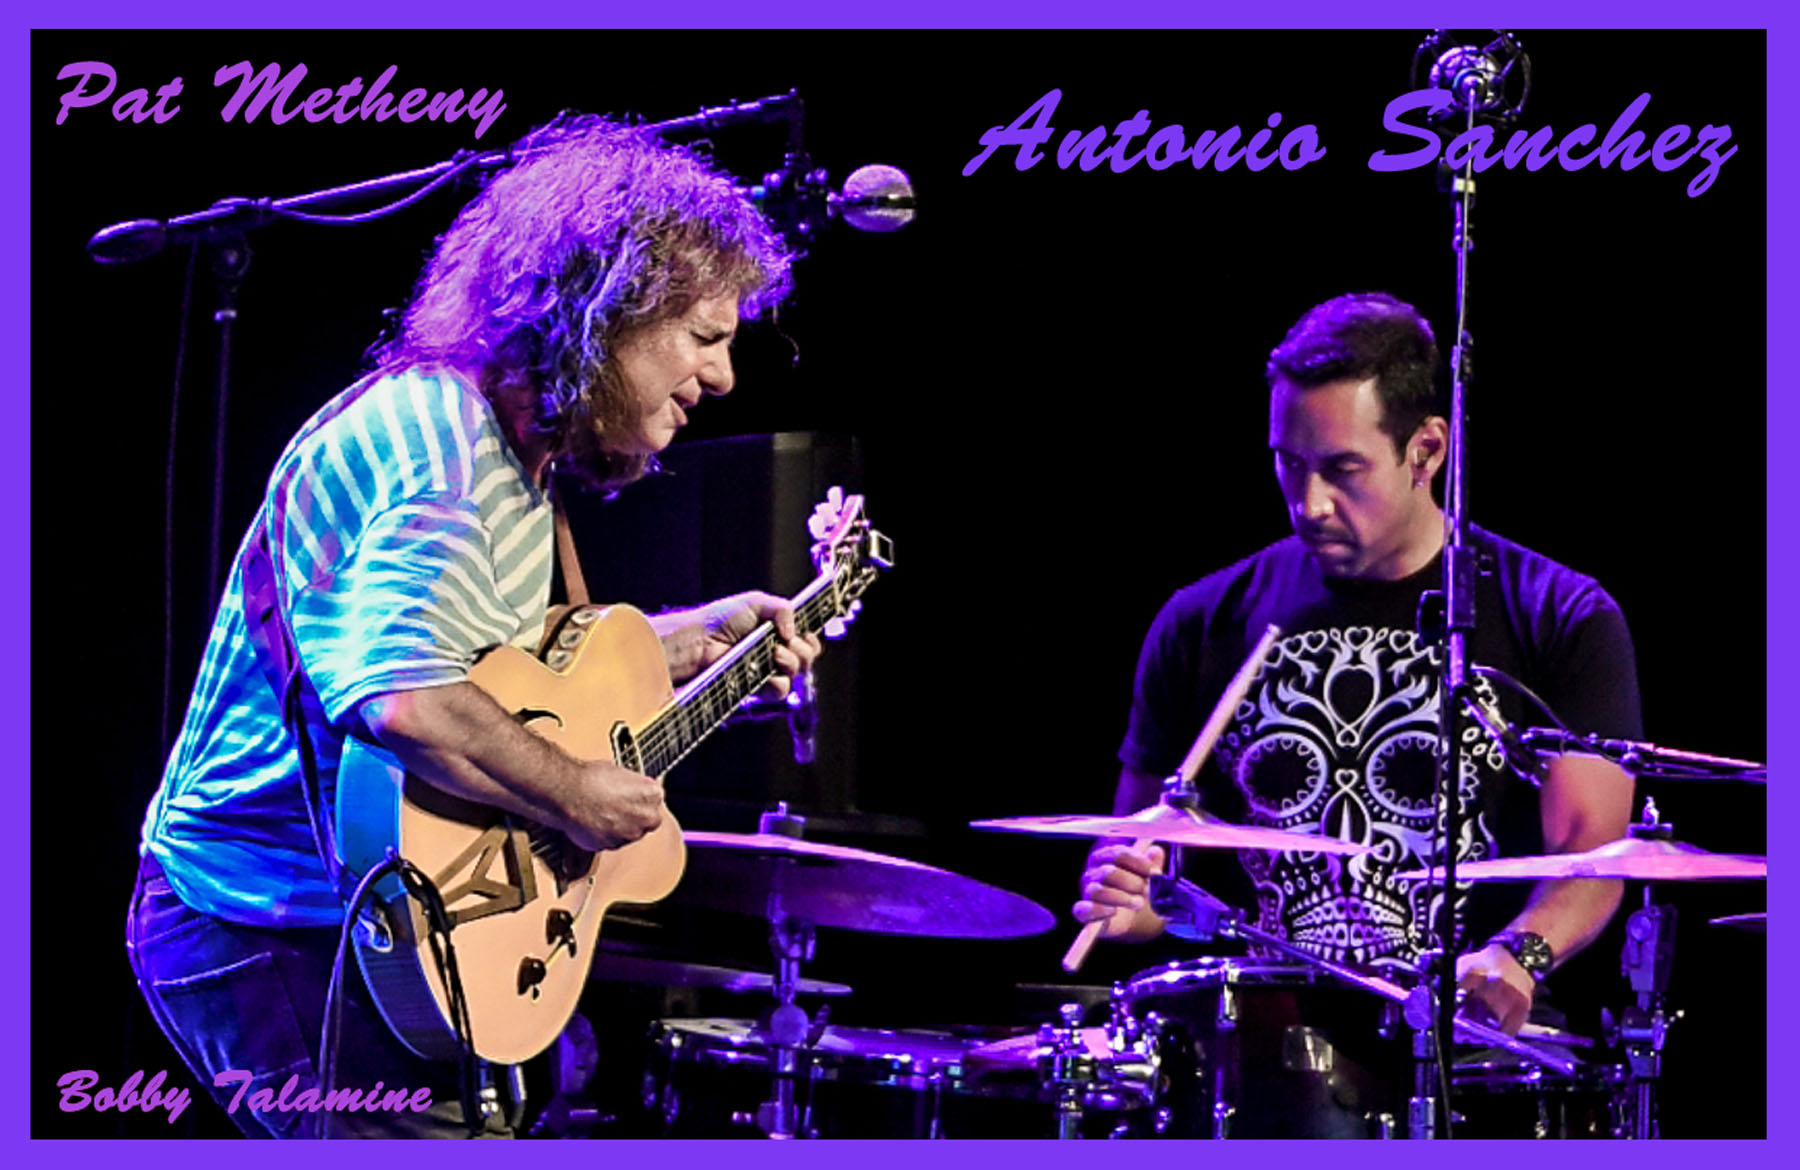 Pat-Metheny-Antonio-Sanchez.jpg